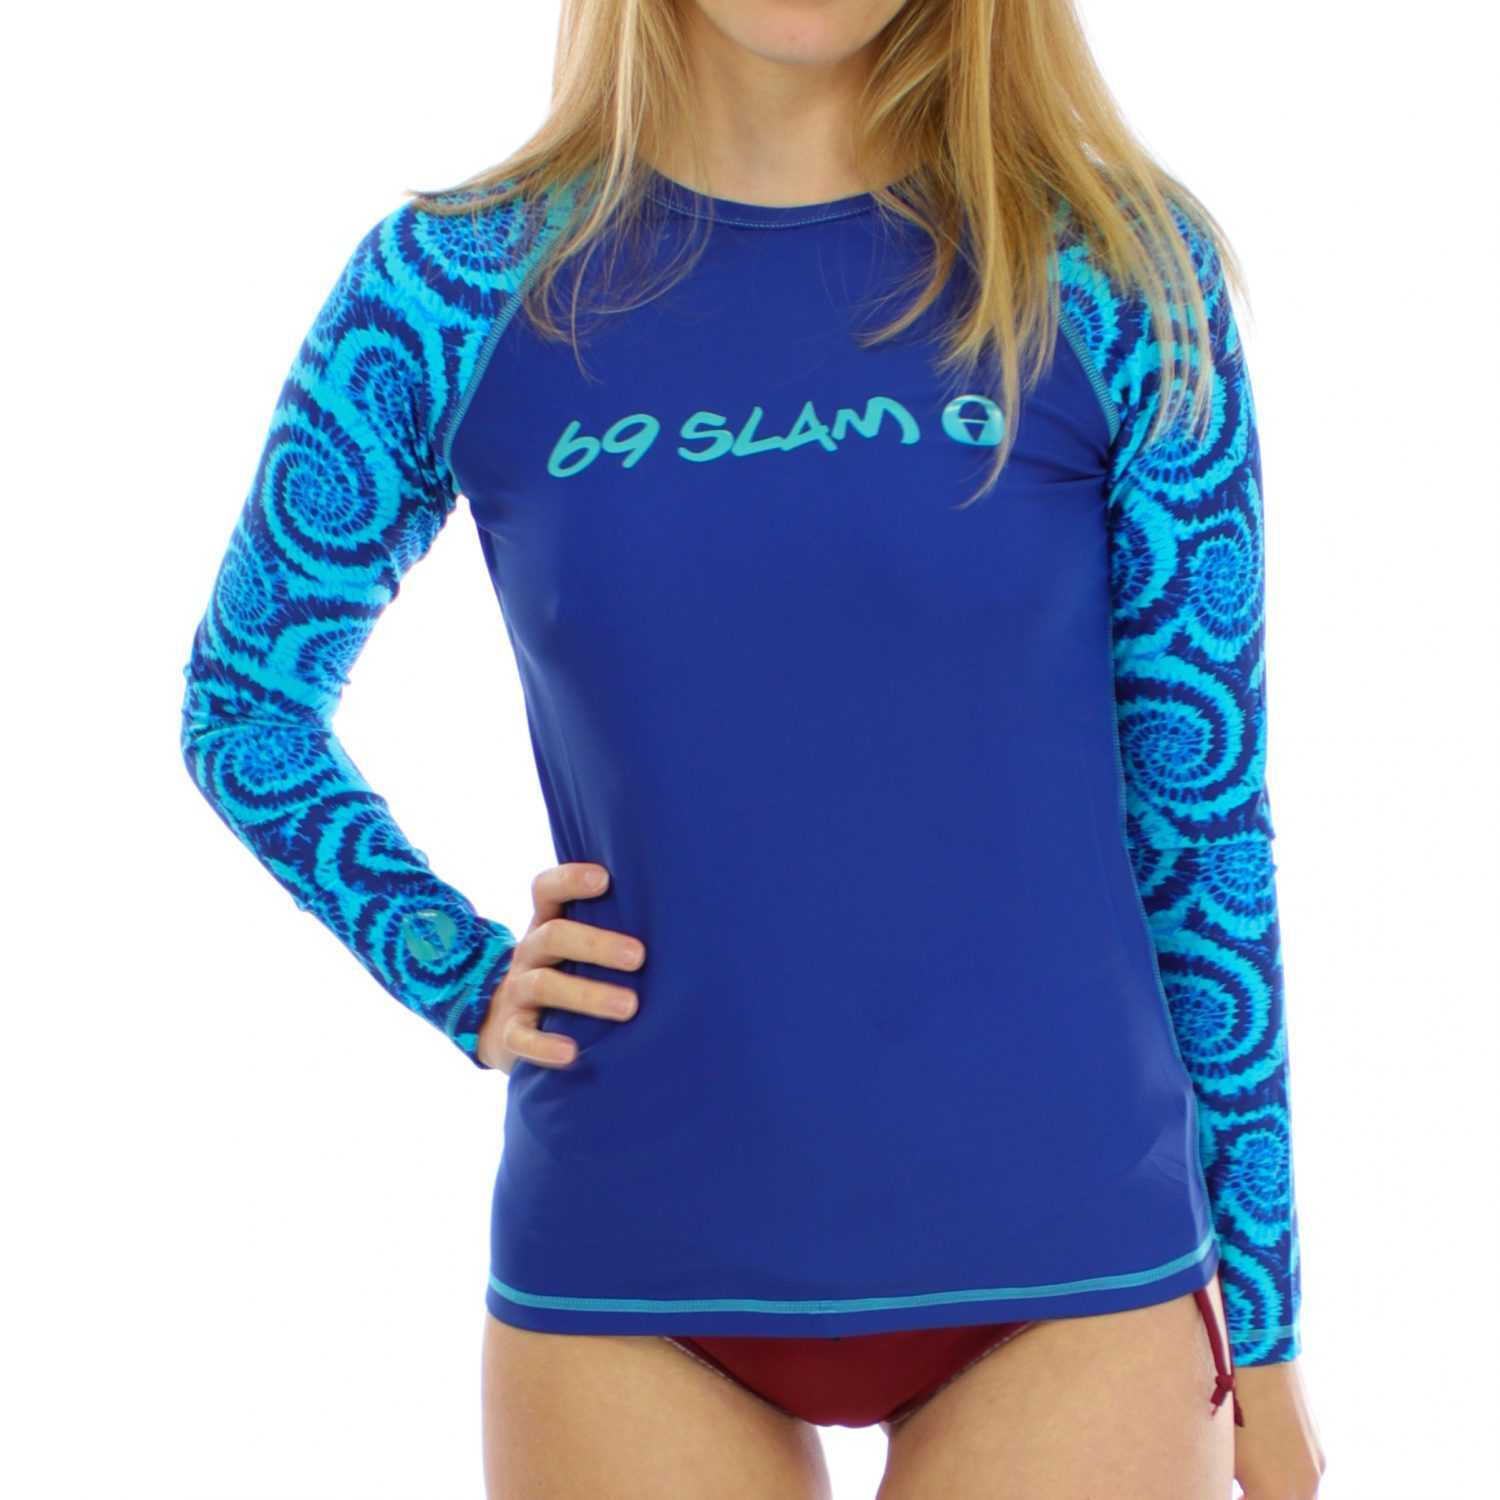 IMG_0971_Zoom_Long sleeves_Rash vest_Rash guard_Lycra_Surfshirt_Surf_Damen_Way back to you